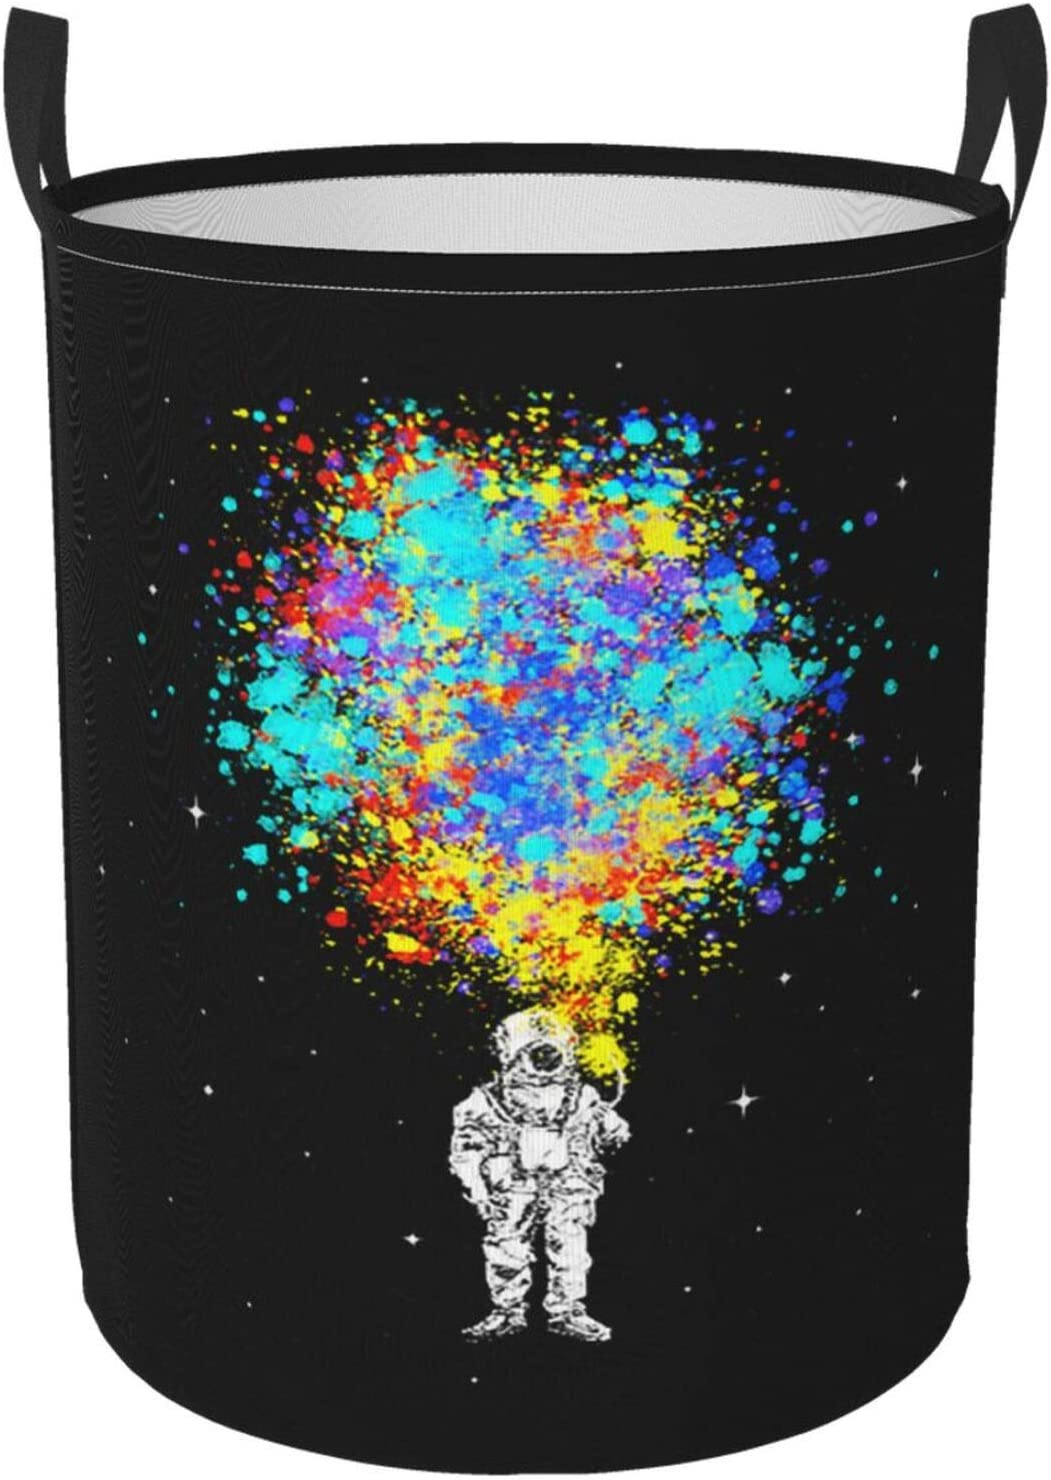 SAIKOUNOYA Space Splatter 2021new shipping free Astronaut Laundry Special Campaign Hamper Basket with H